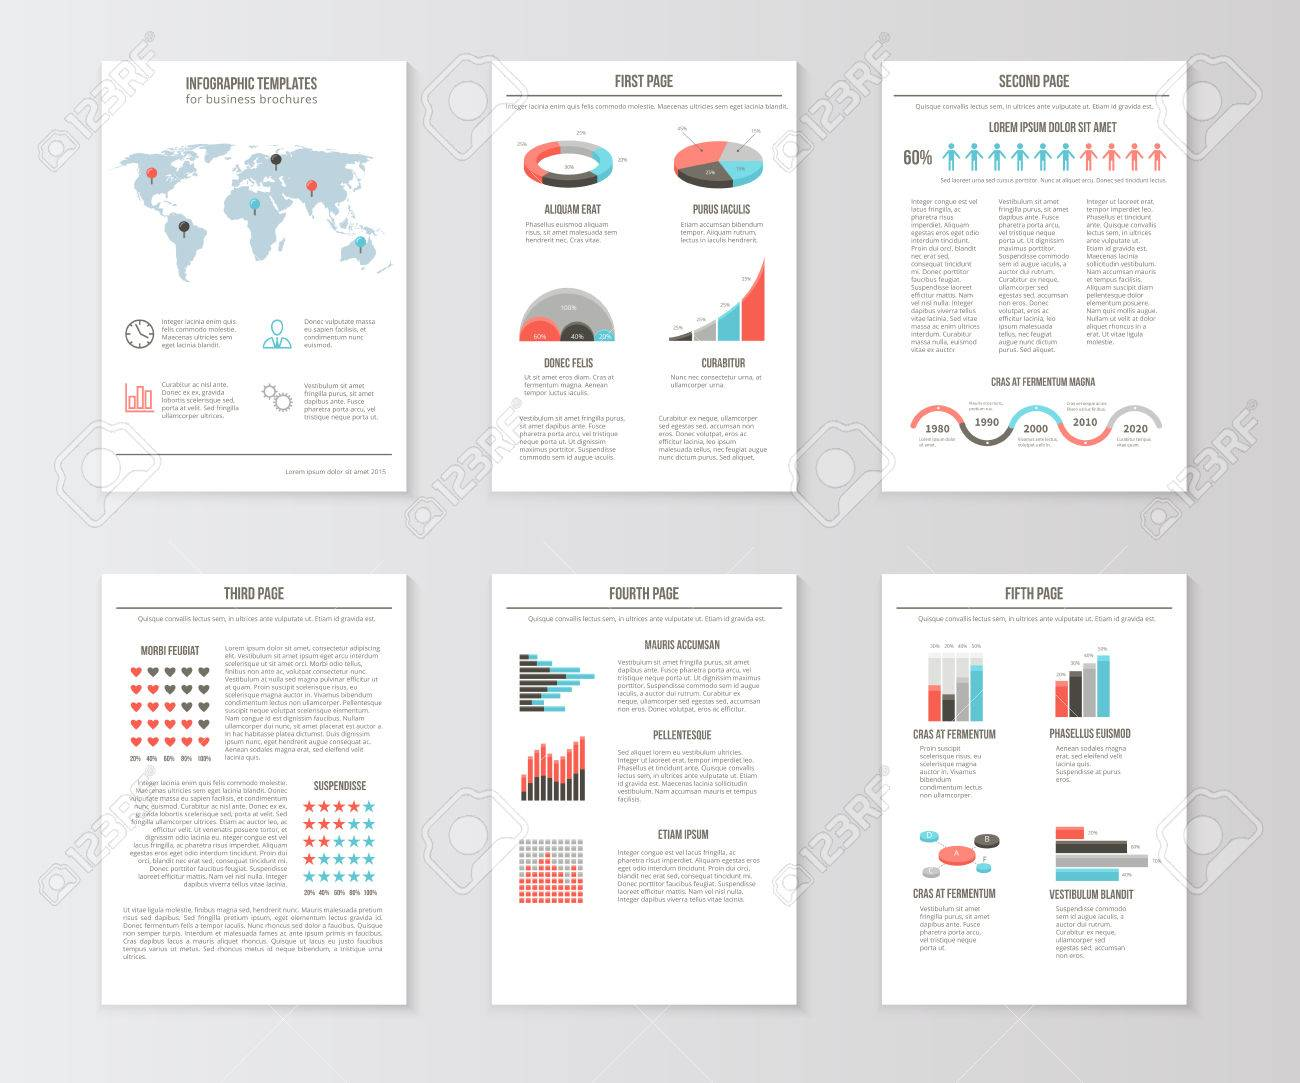 Set of templates for business brochures web pages and flyers set of templates for business brochures web pages and flyers infographic presentation graphic flashek